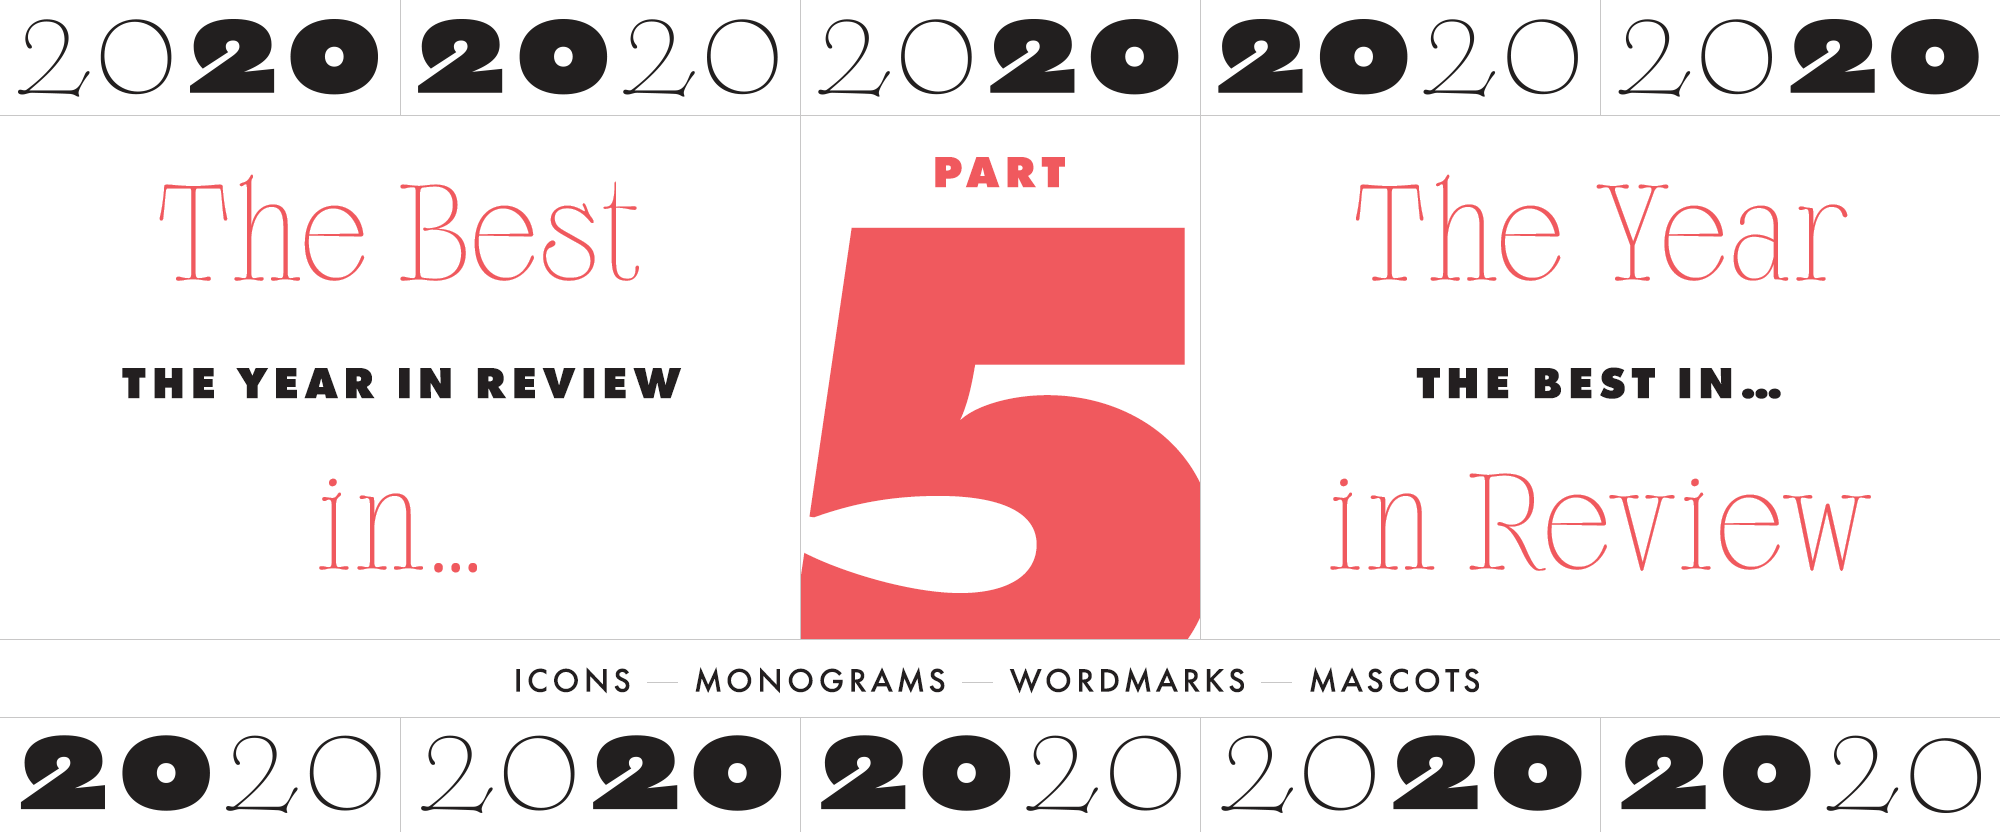 The Year in Review, Part 5: The Best in Icons, Monograms, Wordmarks, and Mascots